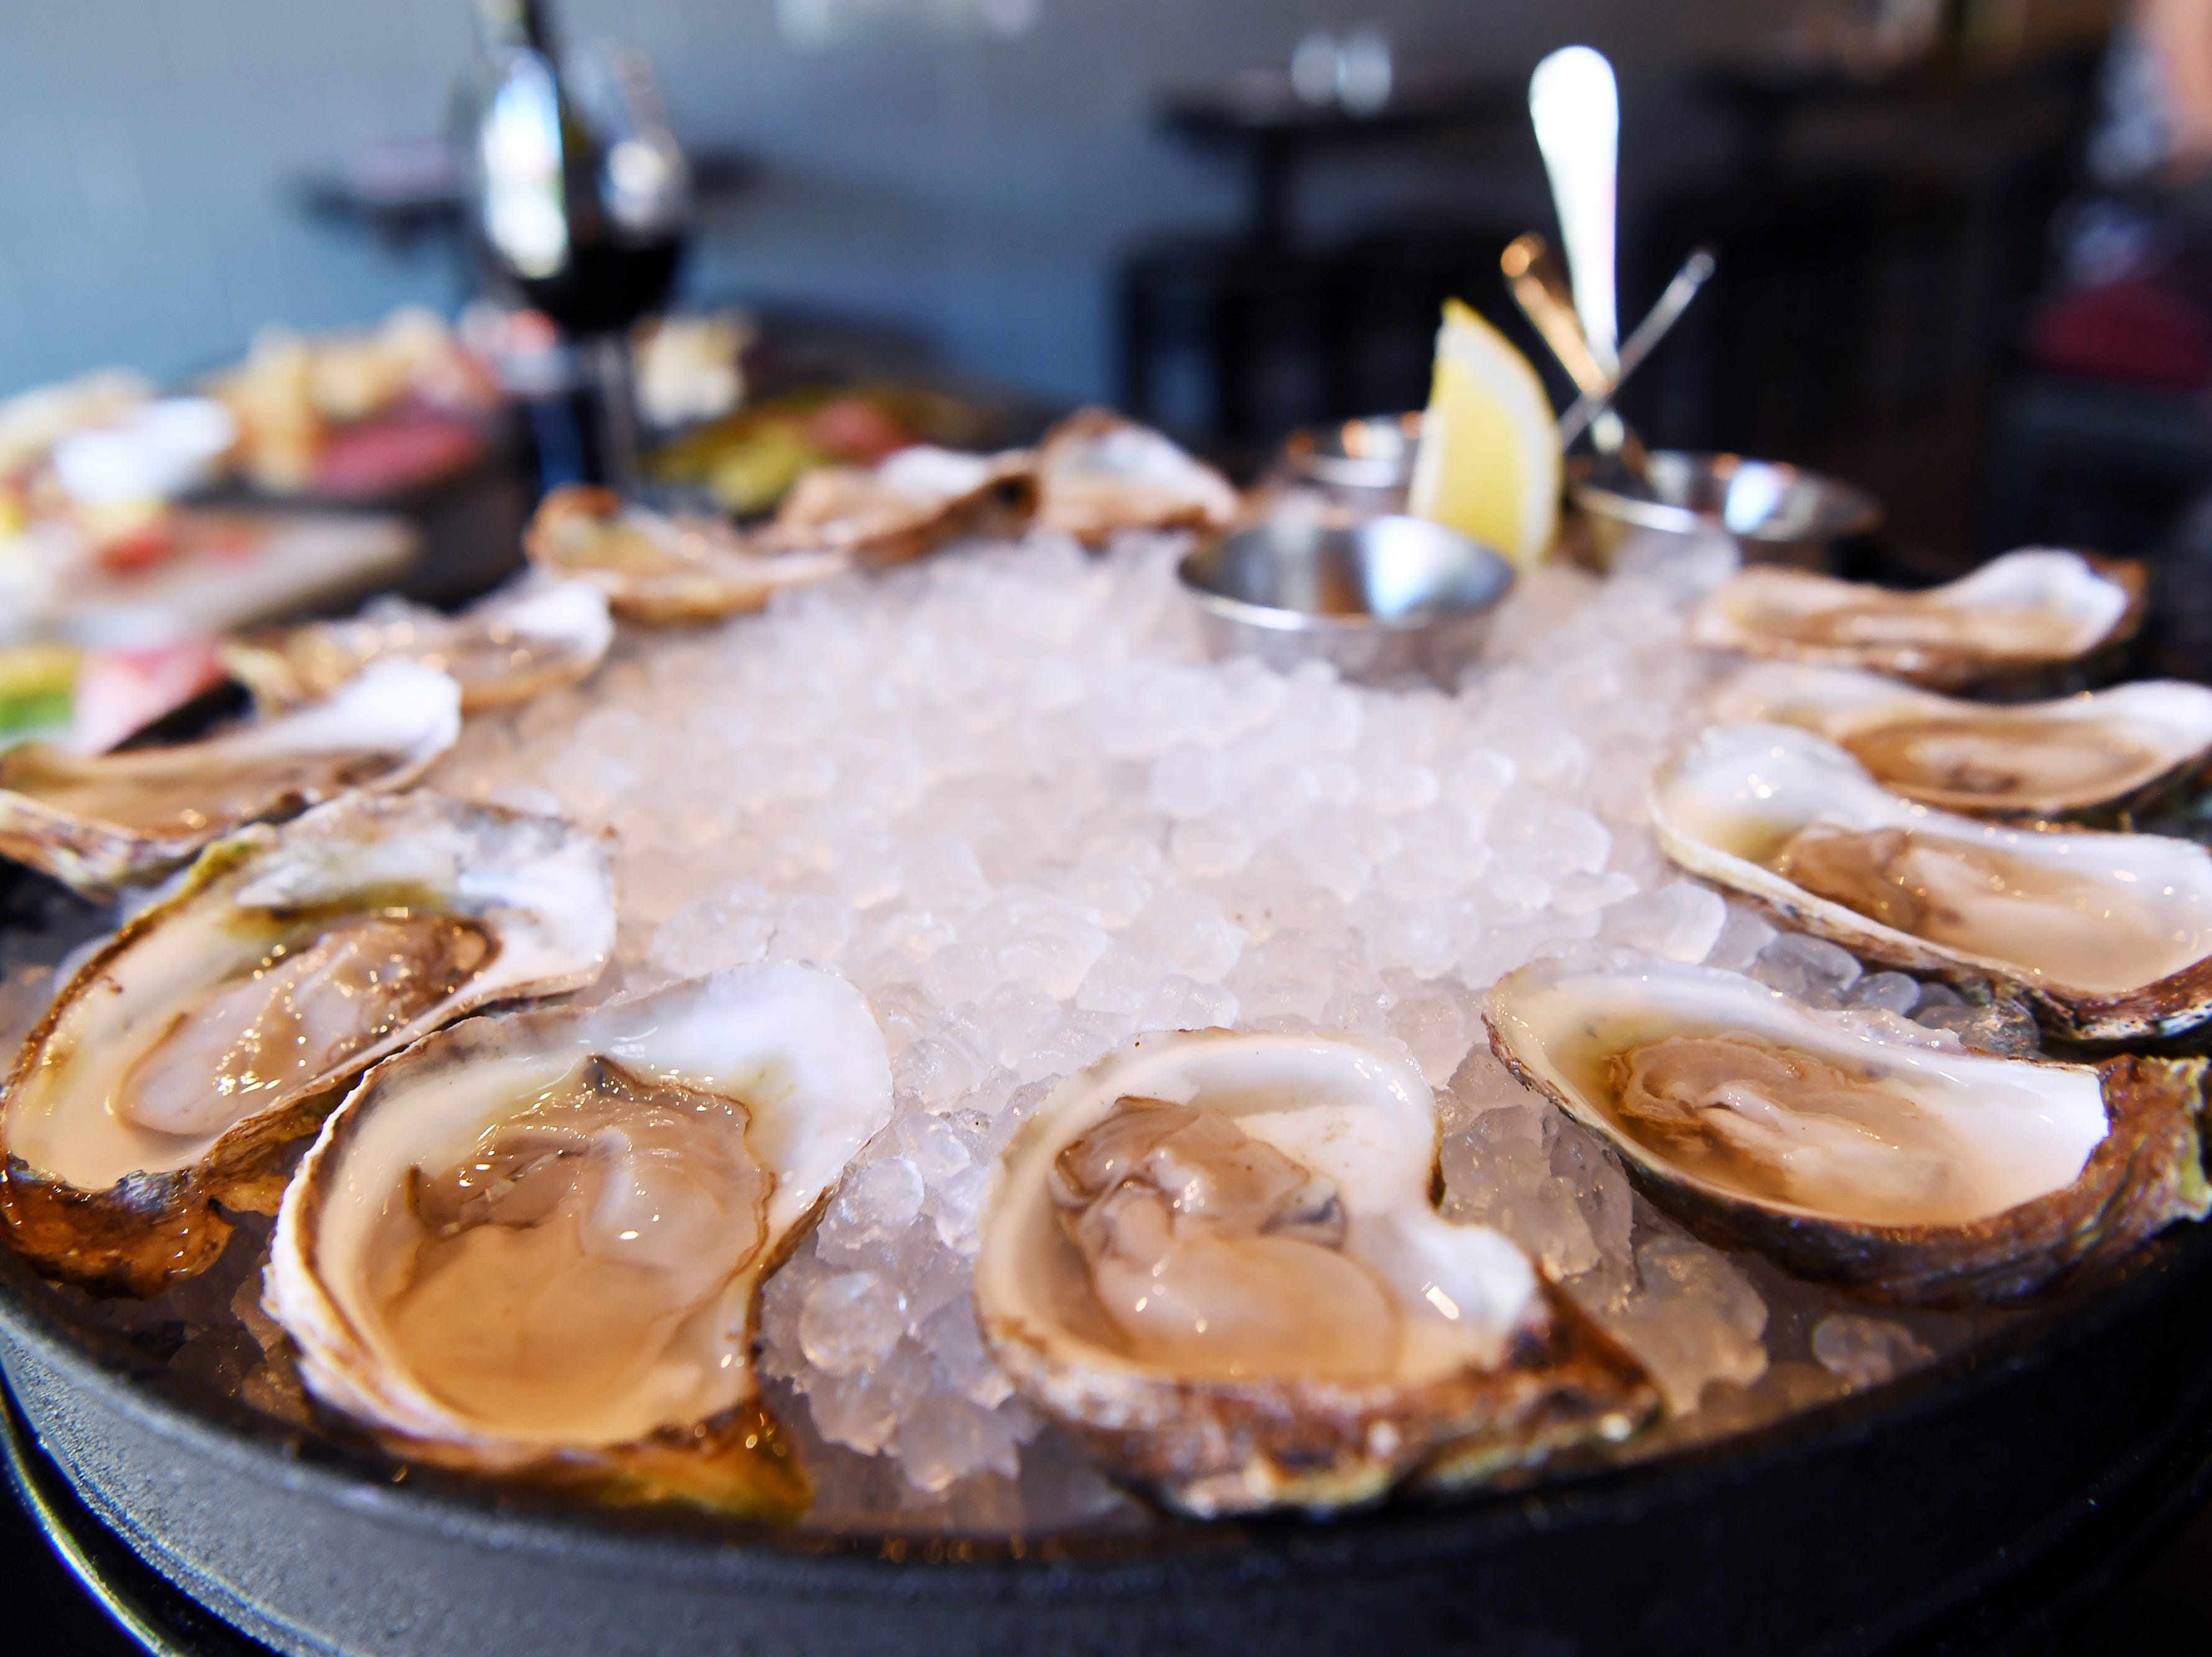 Oysters on the half shell at the Wine & Oyster at Biltmore Station in Asheville July 18, 2018.